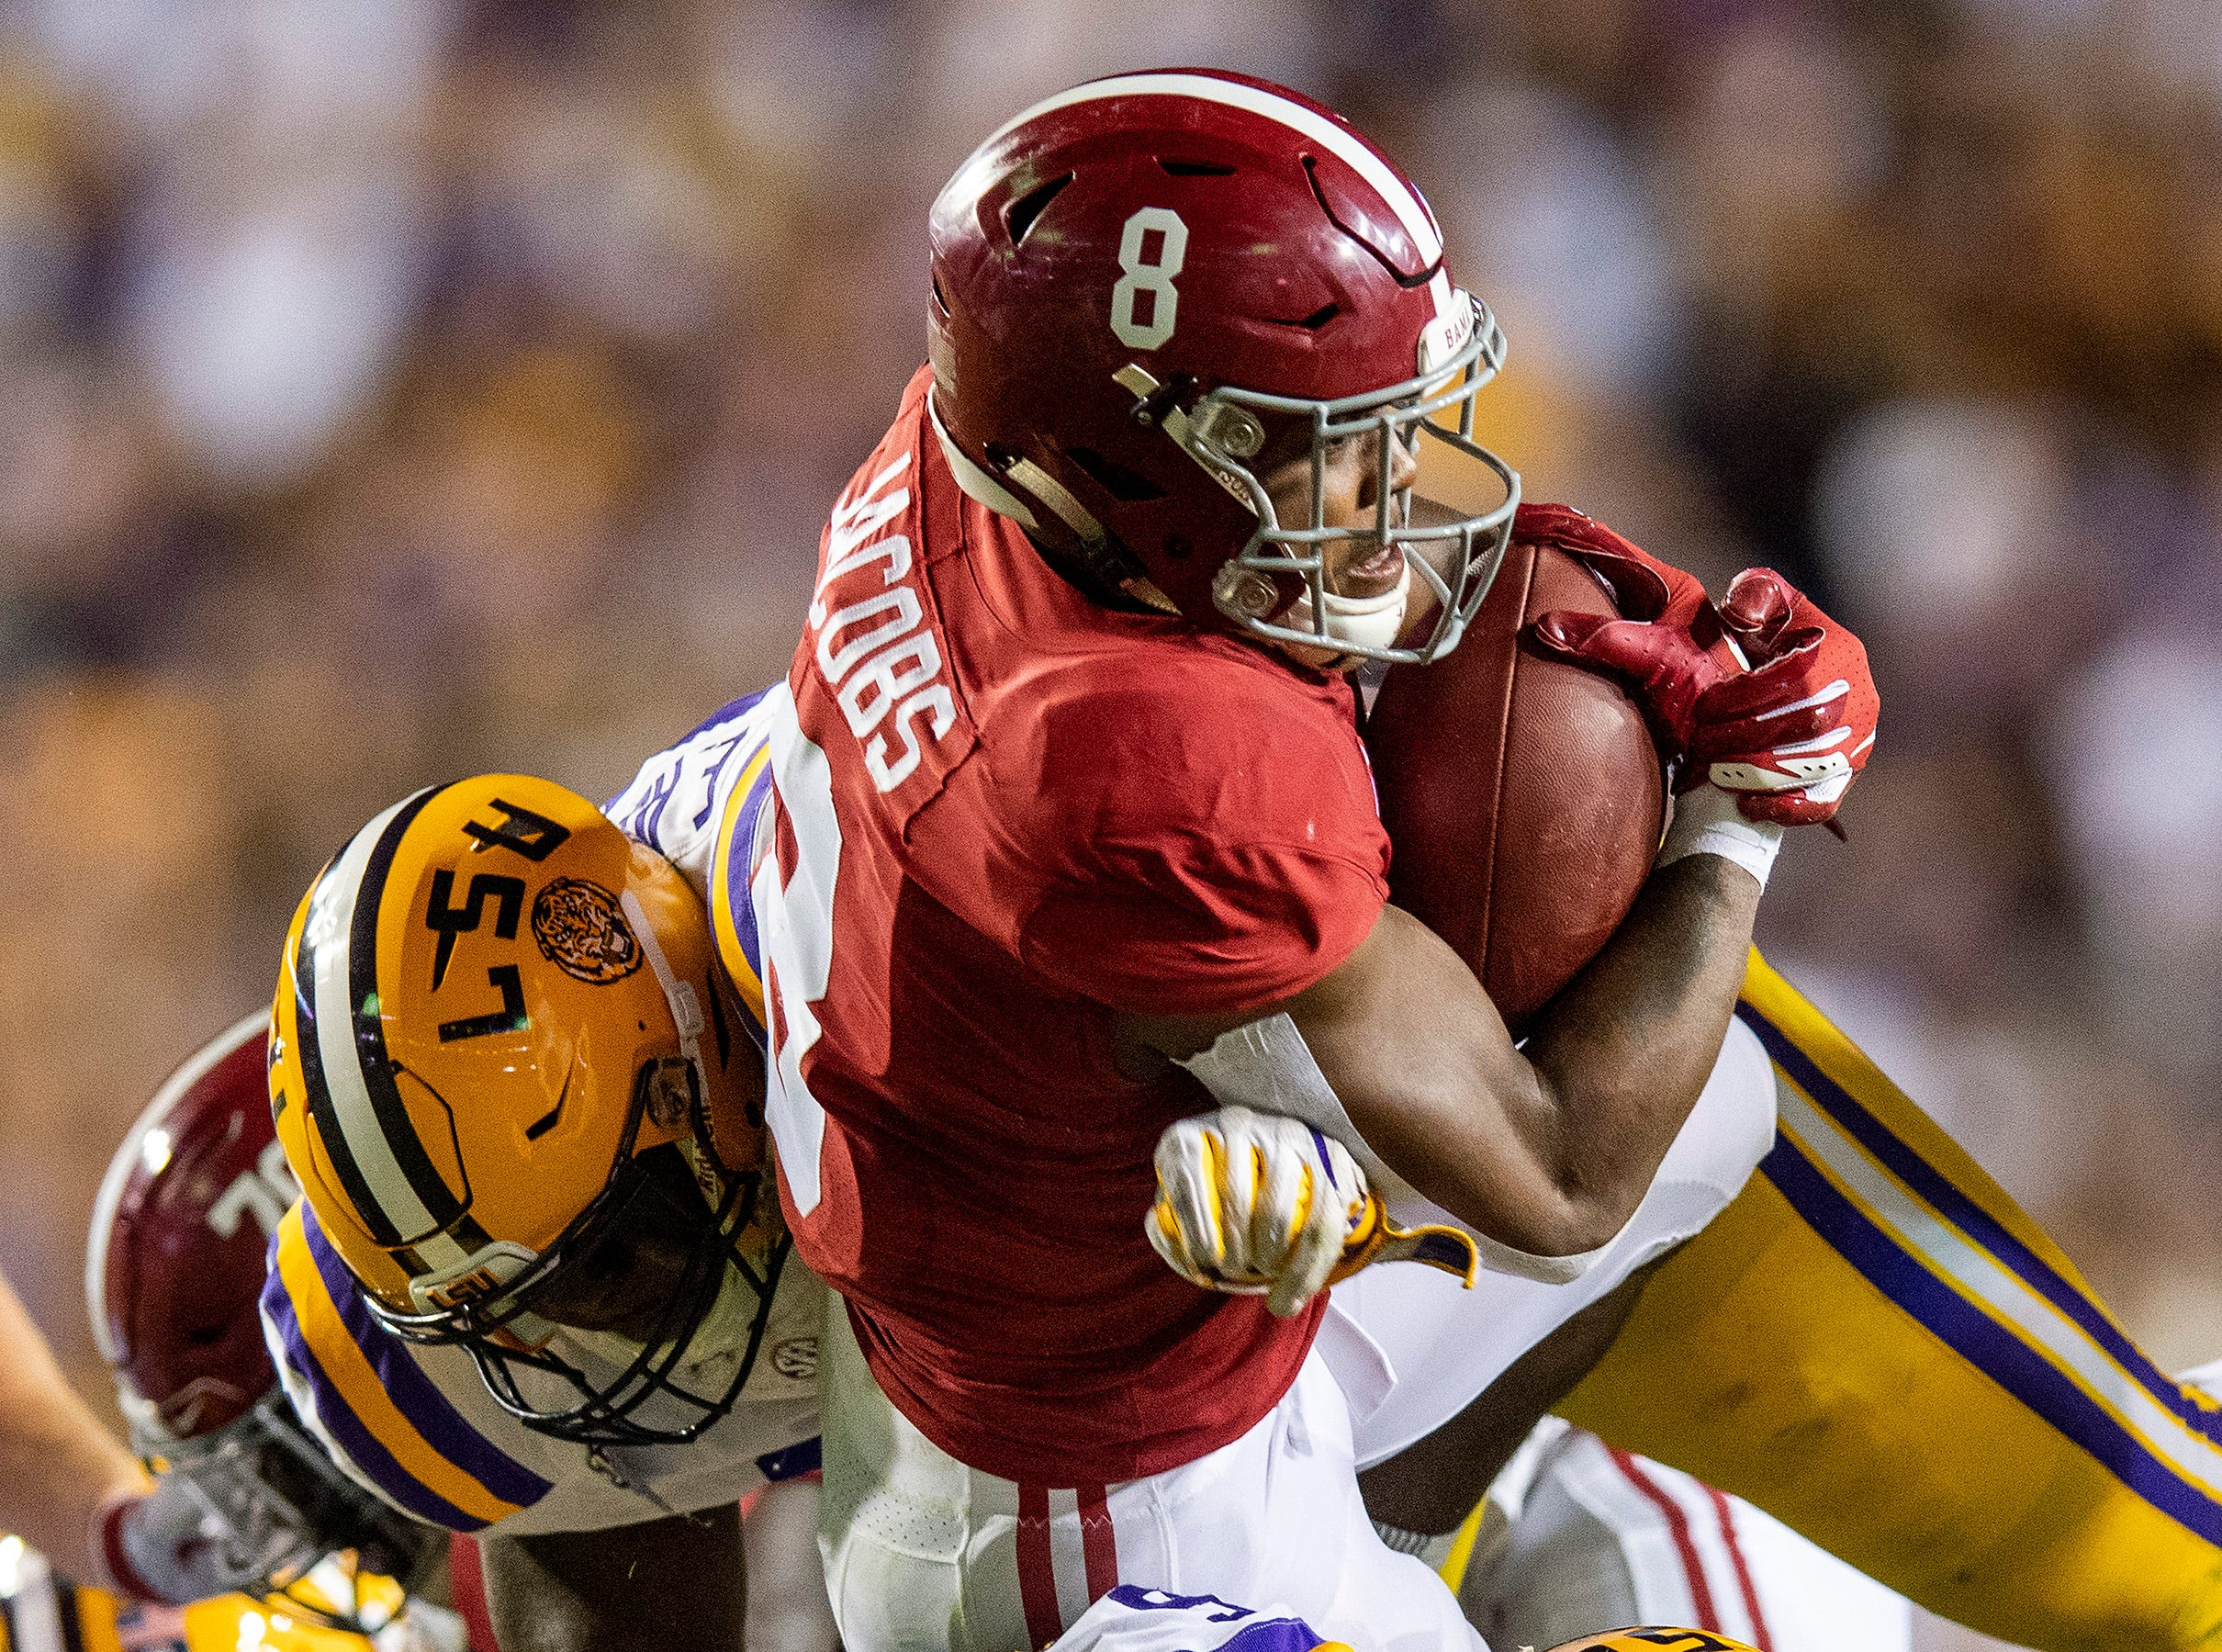 Alabama running back Josh Jacobs (8) makes a first down on a fourth down run against Louisiana State University in first half action at Tiger Stadium in Baton Rouge, La., on Saturday November 3, 2018.